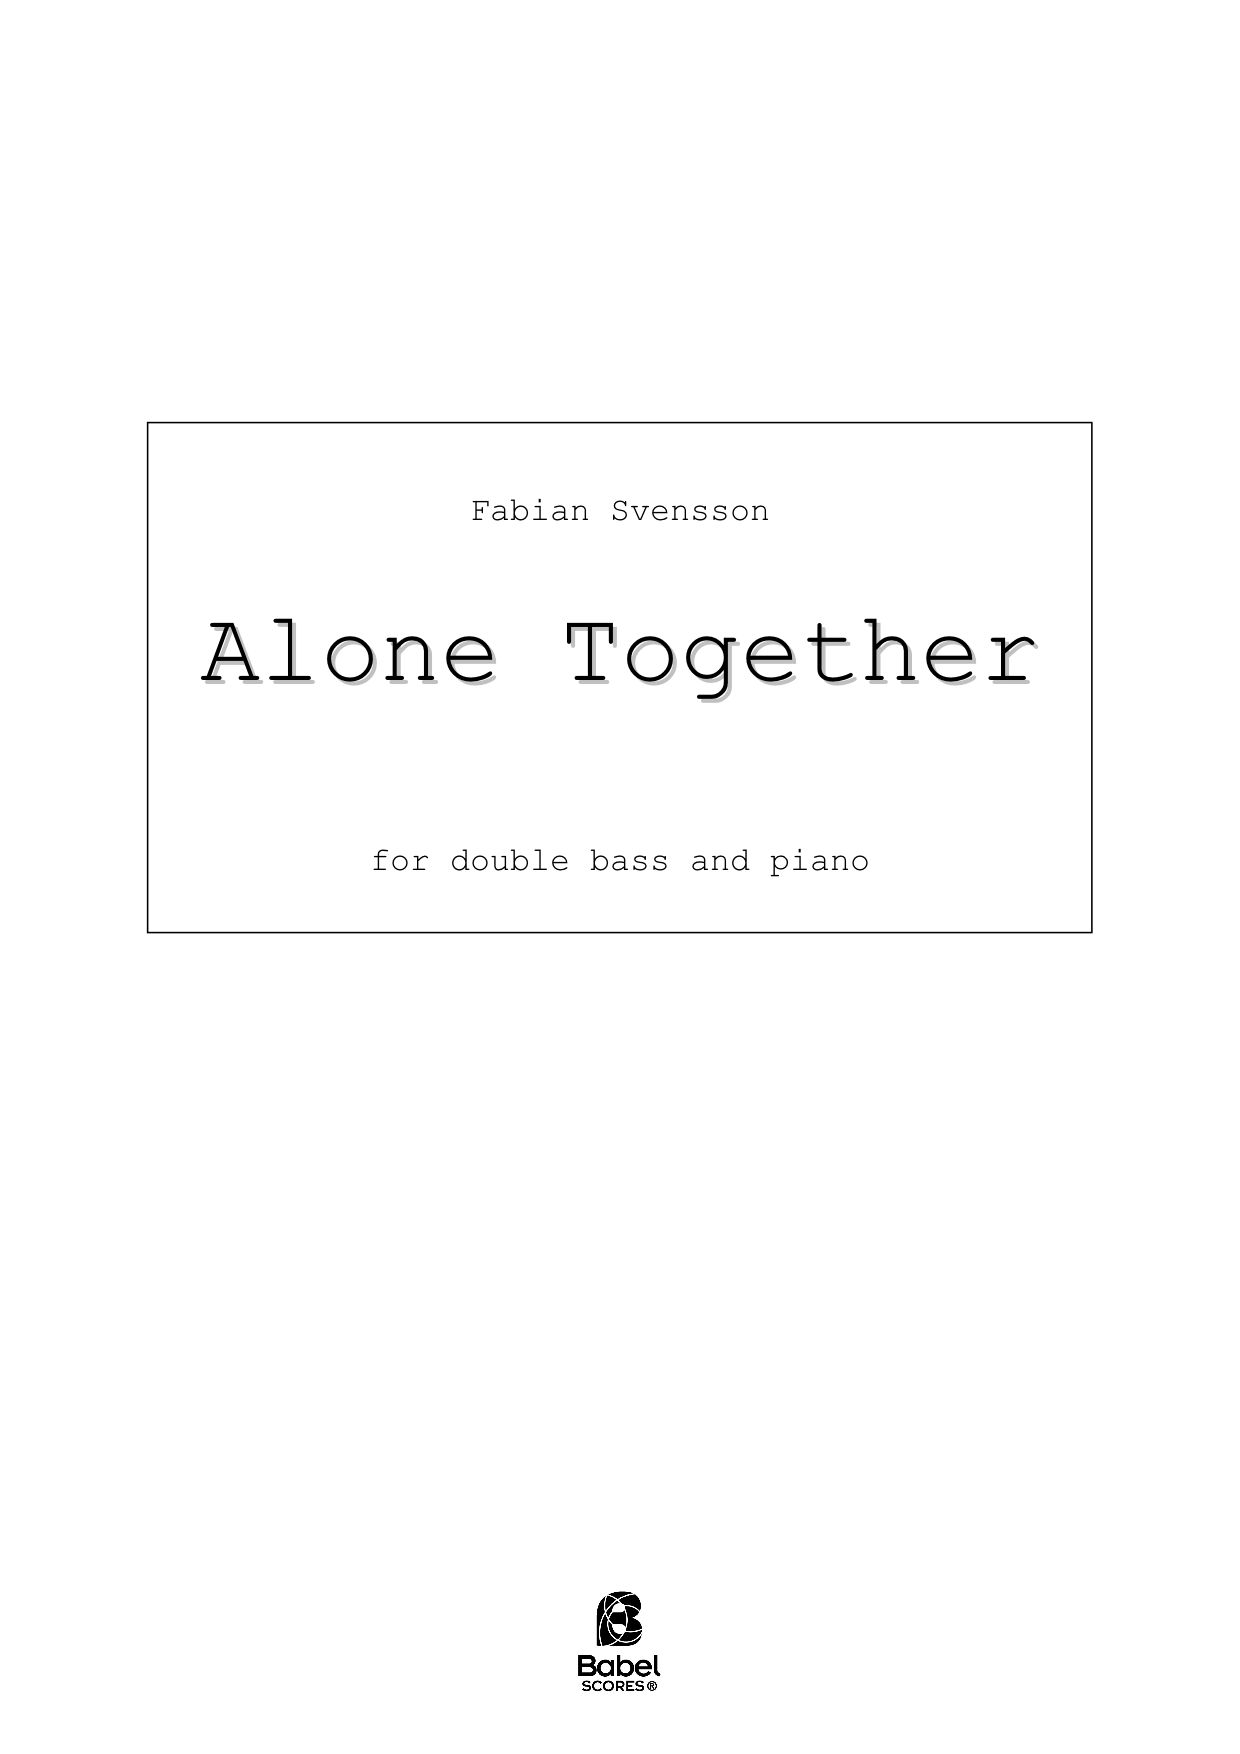 Alone Together A4 z 2 1 01